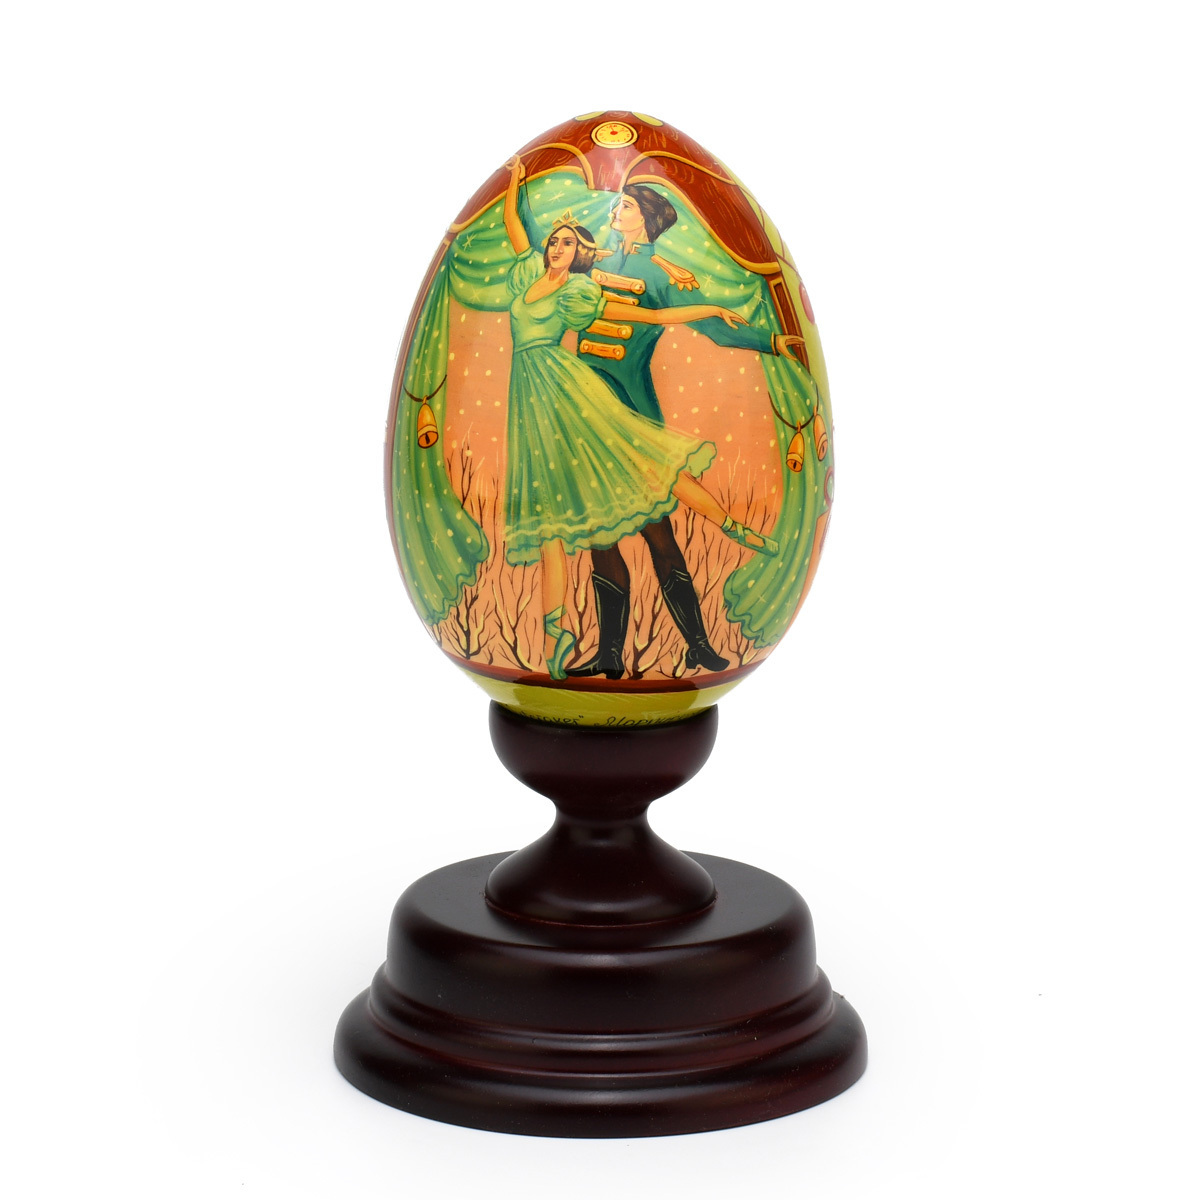 Limited Edition Reuge Hand-Painted Russian Egg Titled The Nutcracker